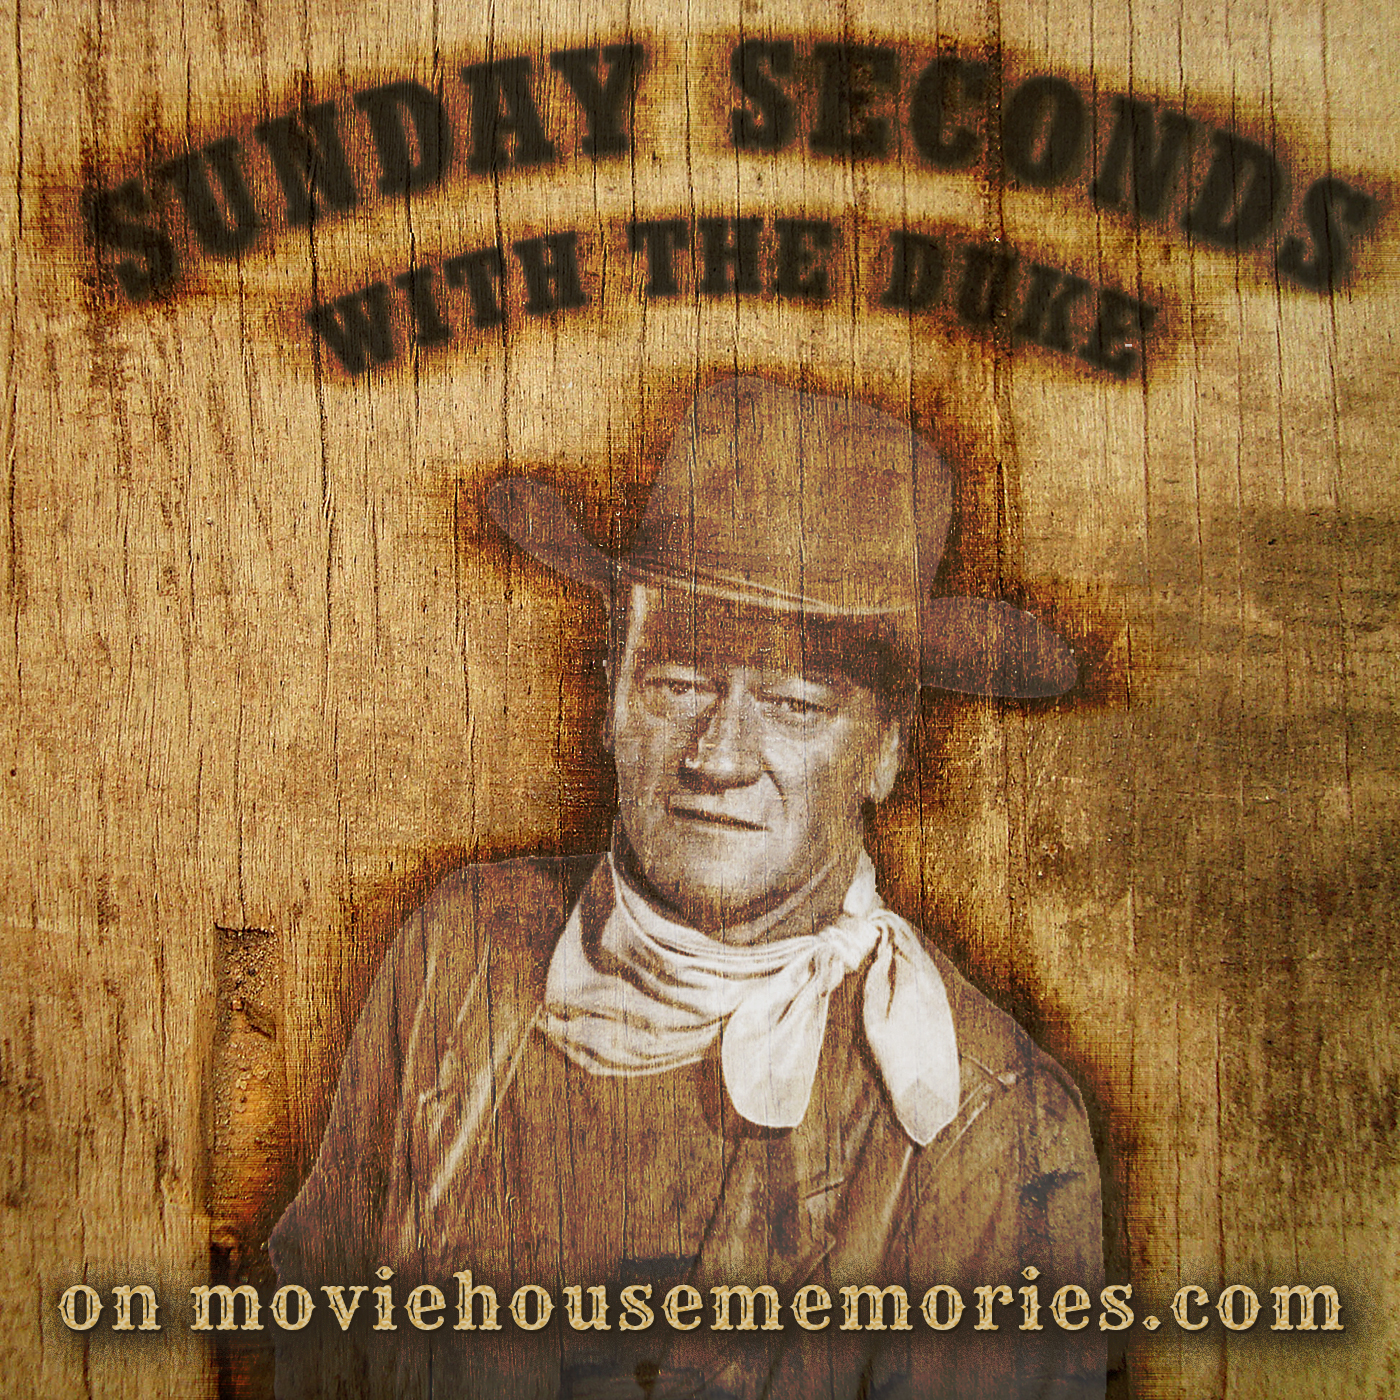 Sunday Seconds with the Duke - The John Wayne Film Review